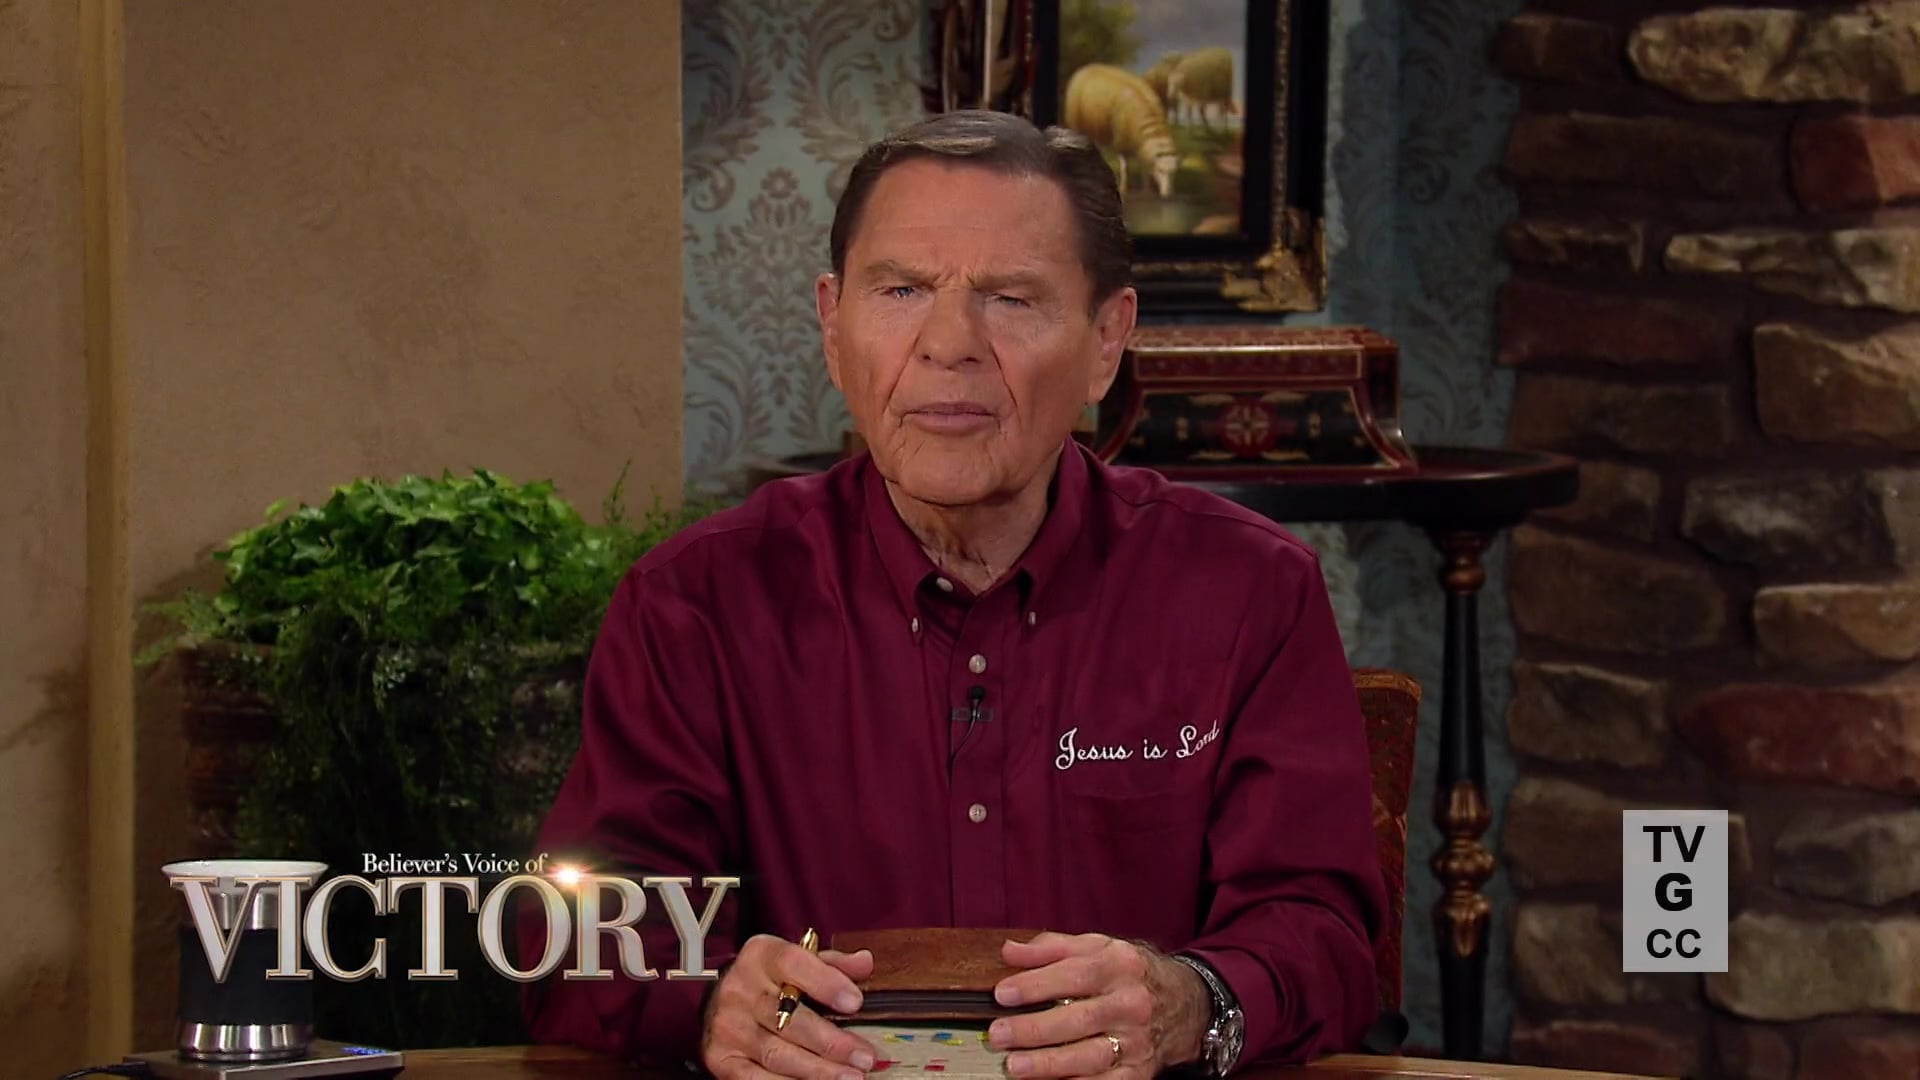 Join Kenneth Copeland, with Dr. Don and Mary Colbert on Believer's Voice of Victory as they discuss Brother Copeland's favorite chapter in Mary's new book, Prayer That Changes Everything. Hear the amazing story that led Mary to write this book, and then learn how you can have faith that excites God!